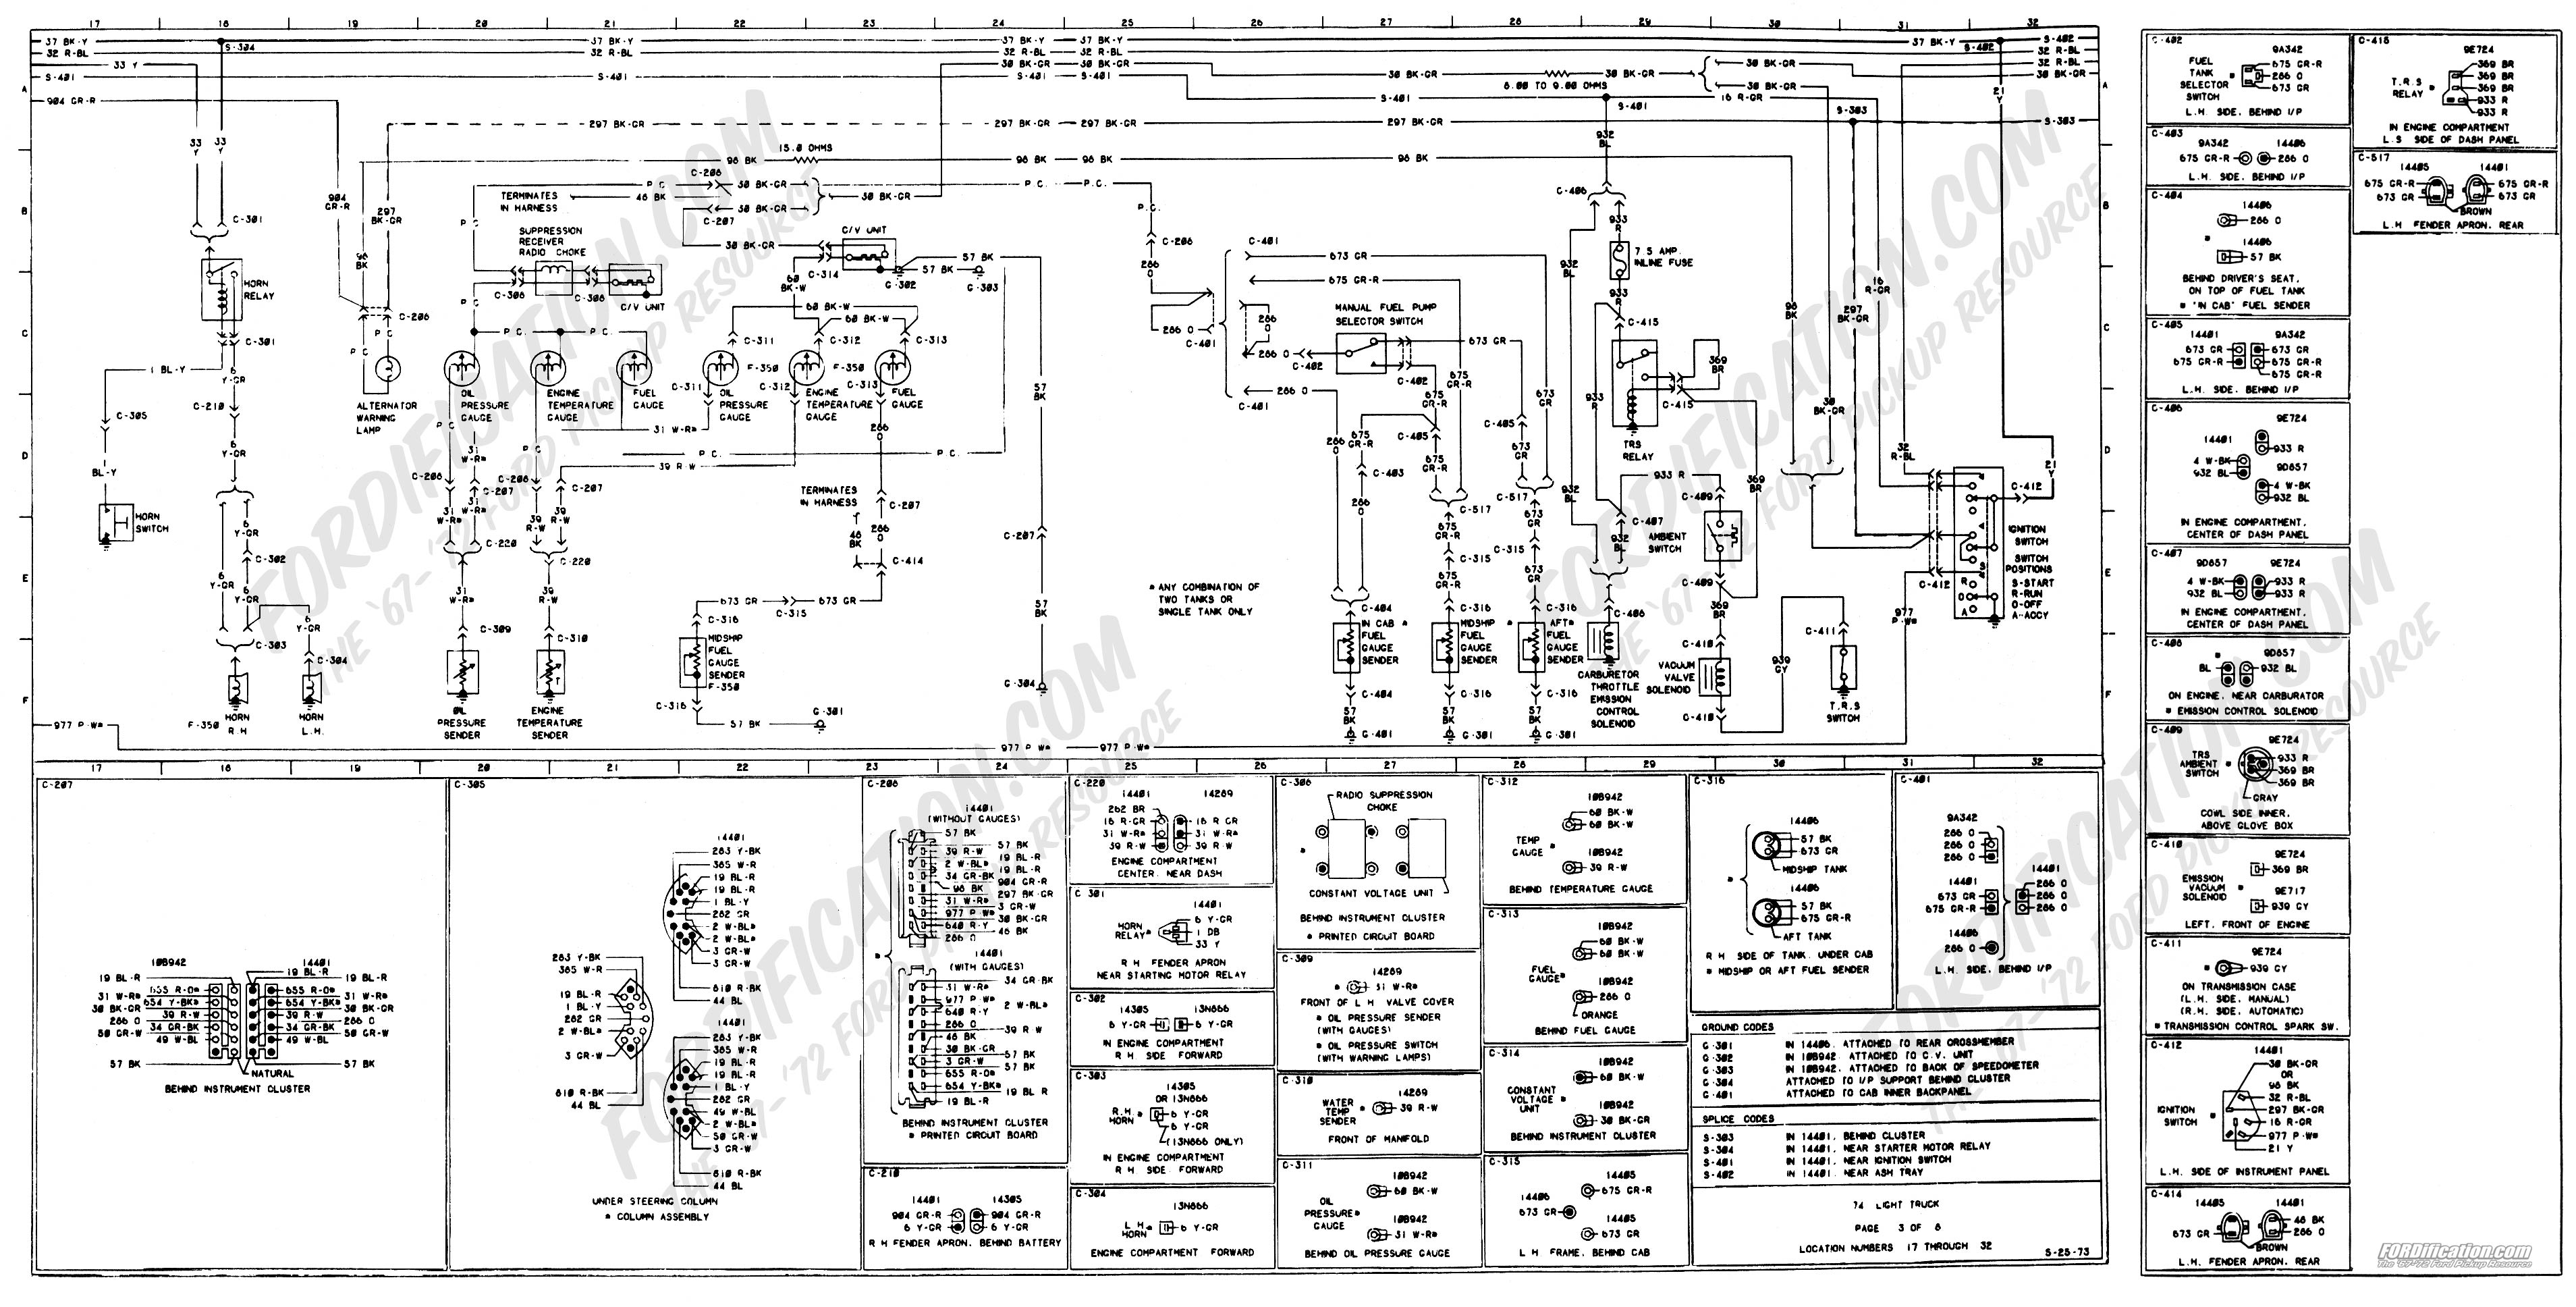 1973 1979 ford truck wiring diagrams & schematics fordification net 1974 Ford F100 Wiring Diagram 1974 Ford F100 Wiring Diagram #4 1974 ford f100 wiring diagram